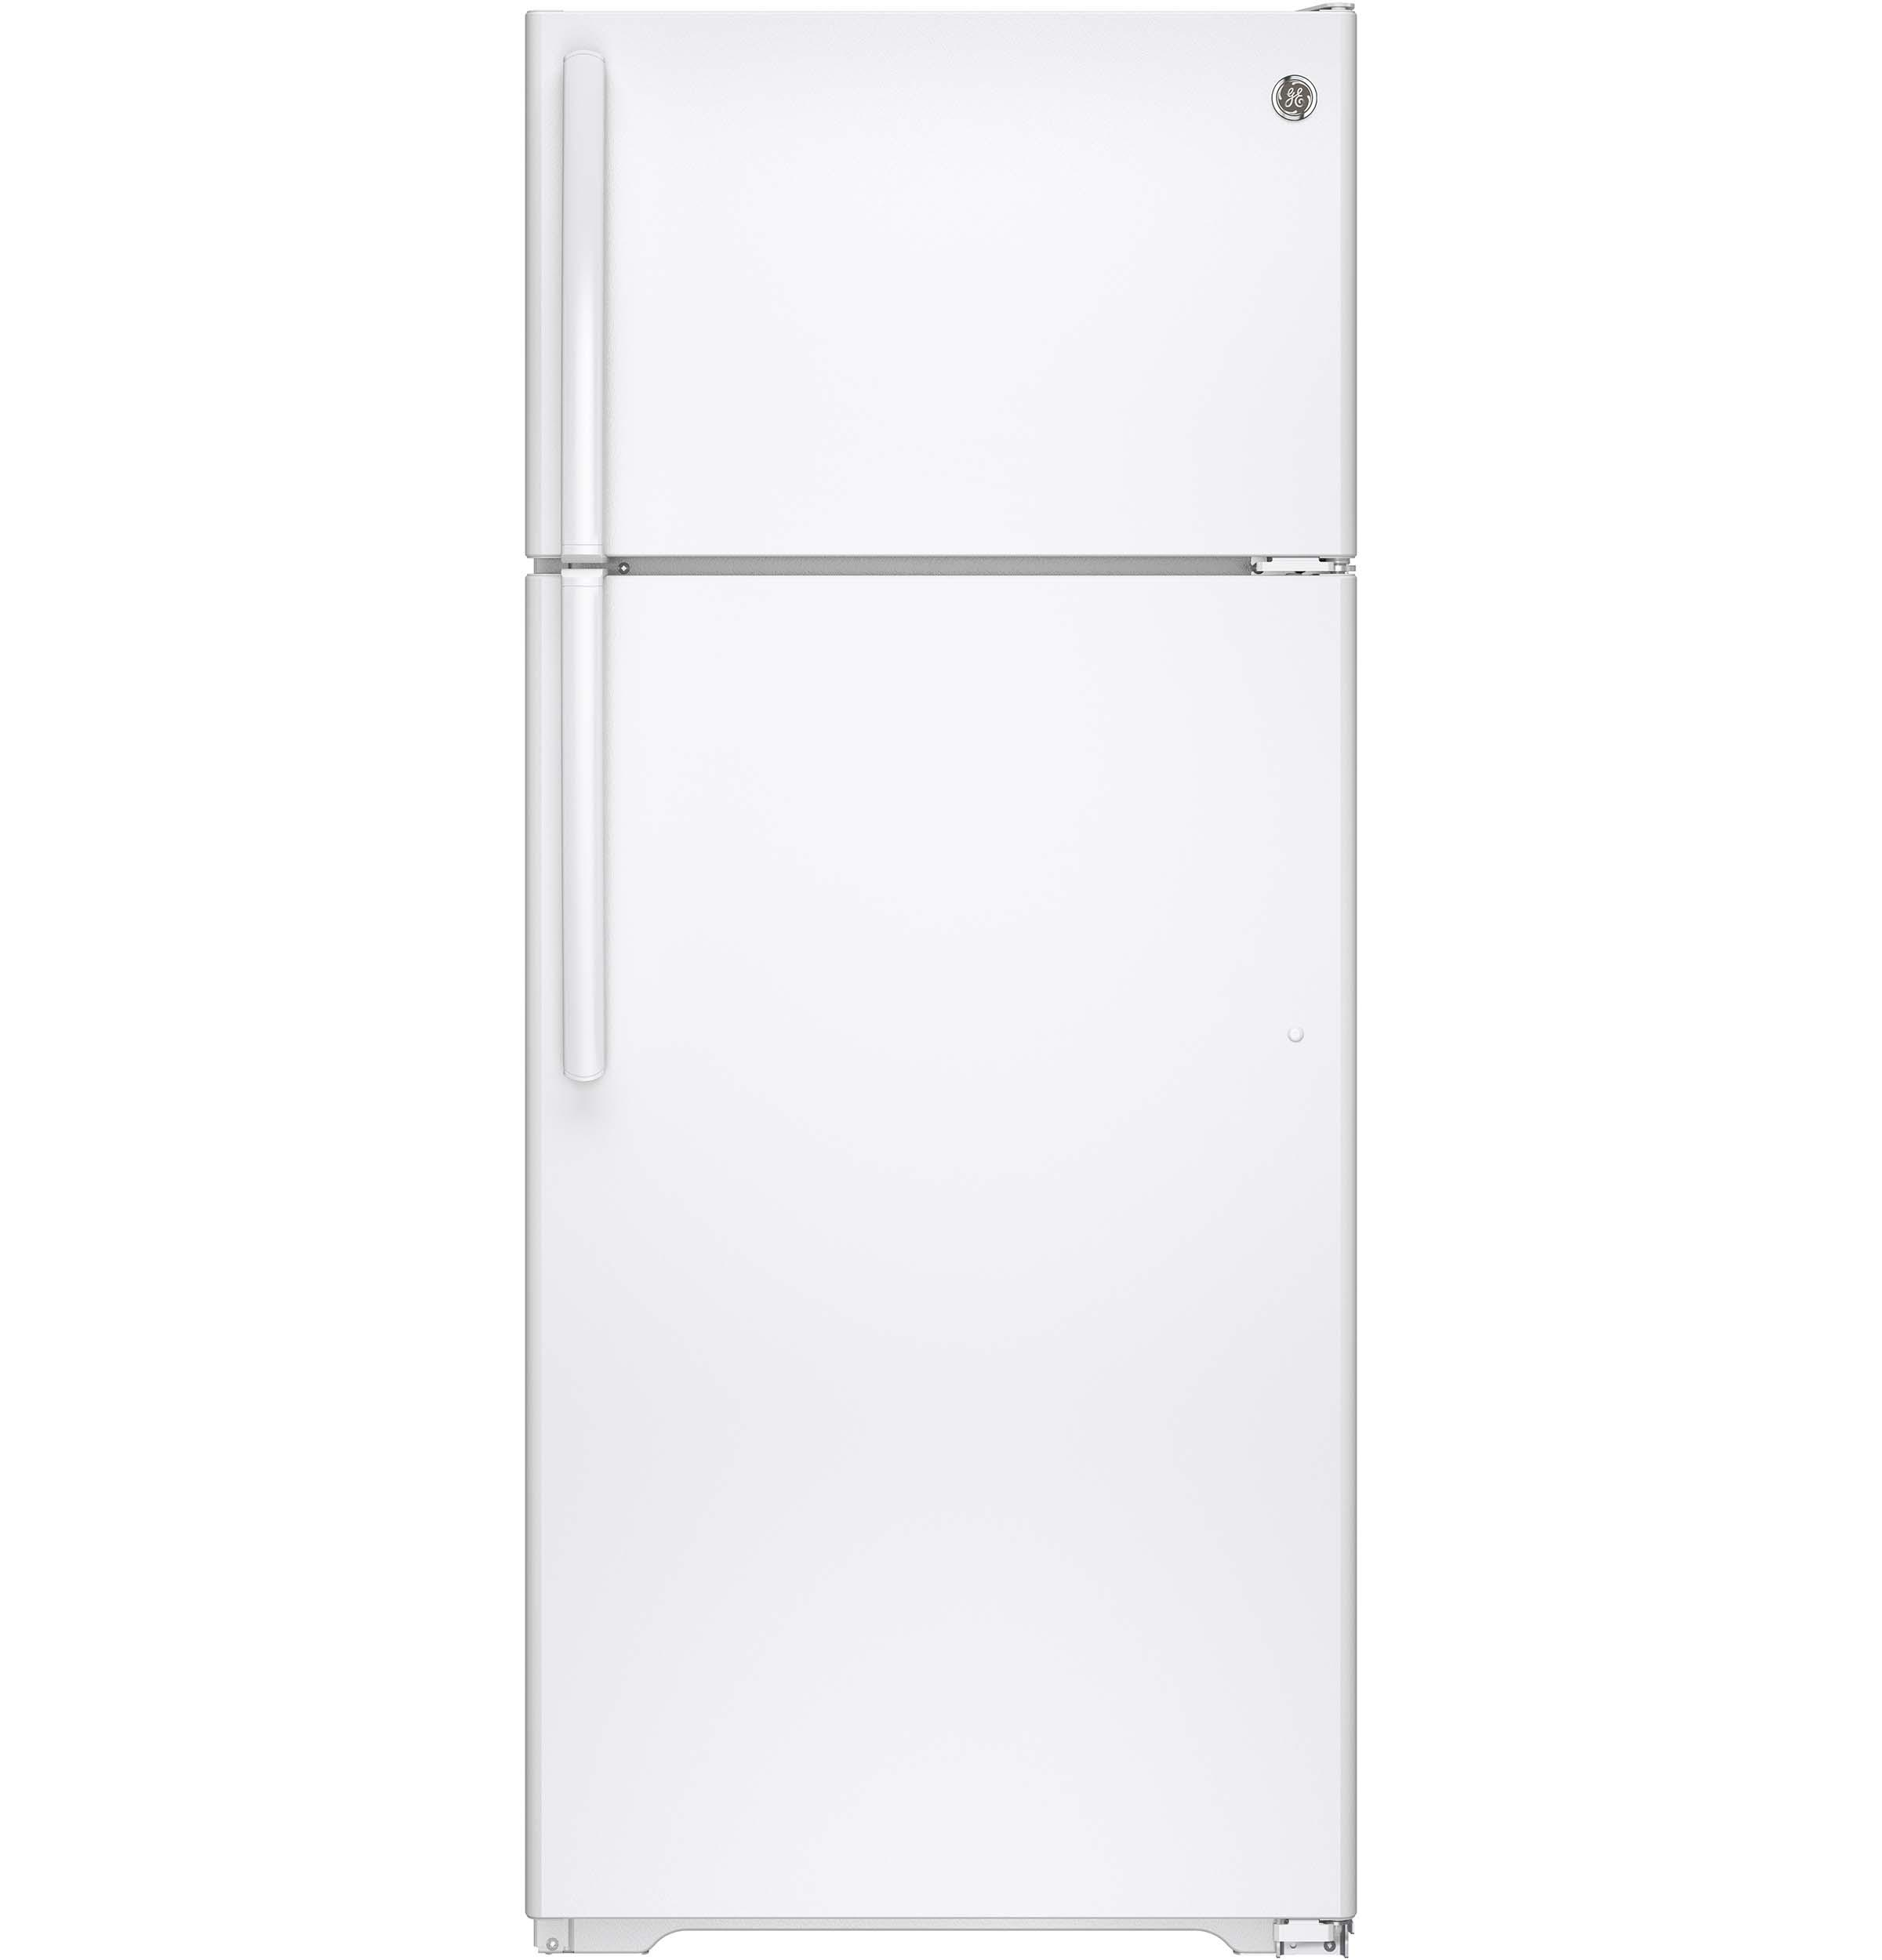 GE(R) 17.5 Cu. Ft. Top-Freezer Refrigerator